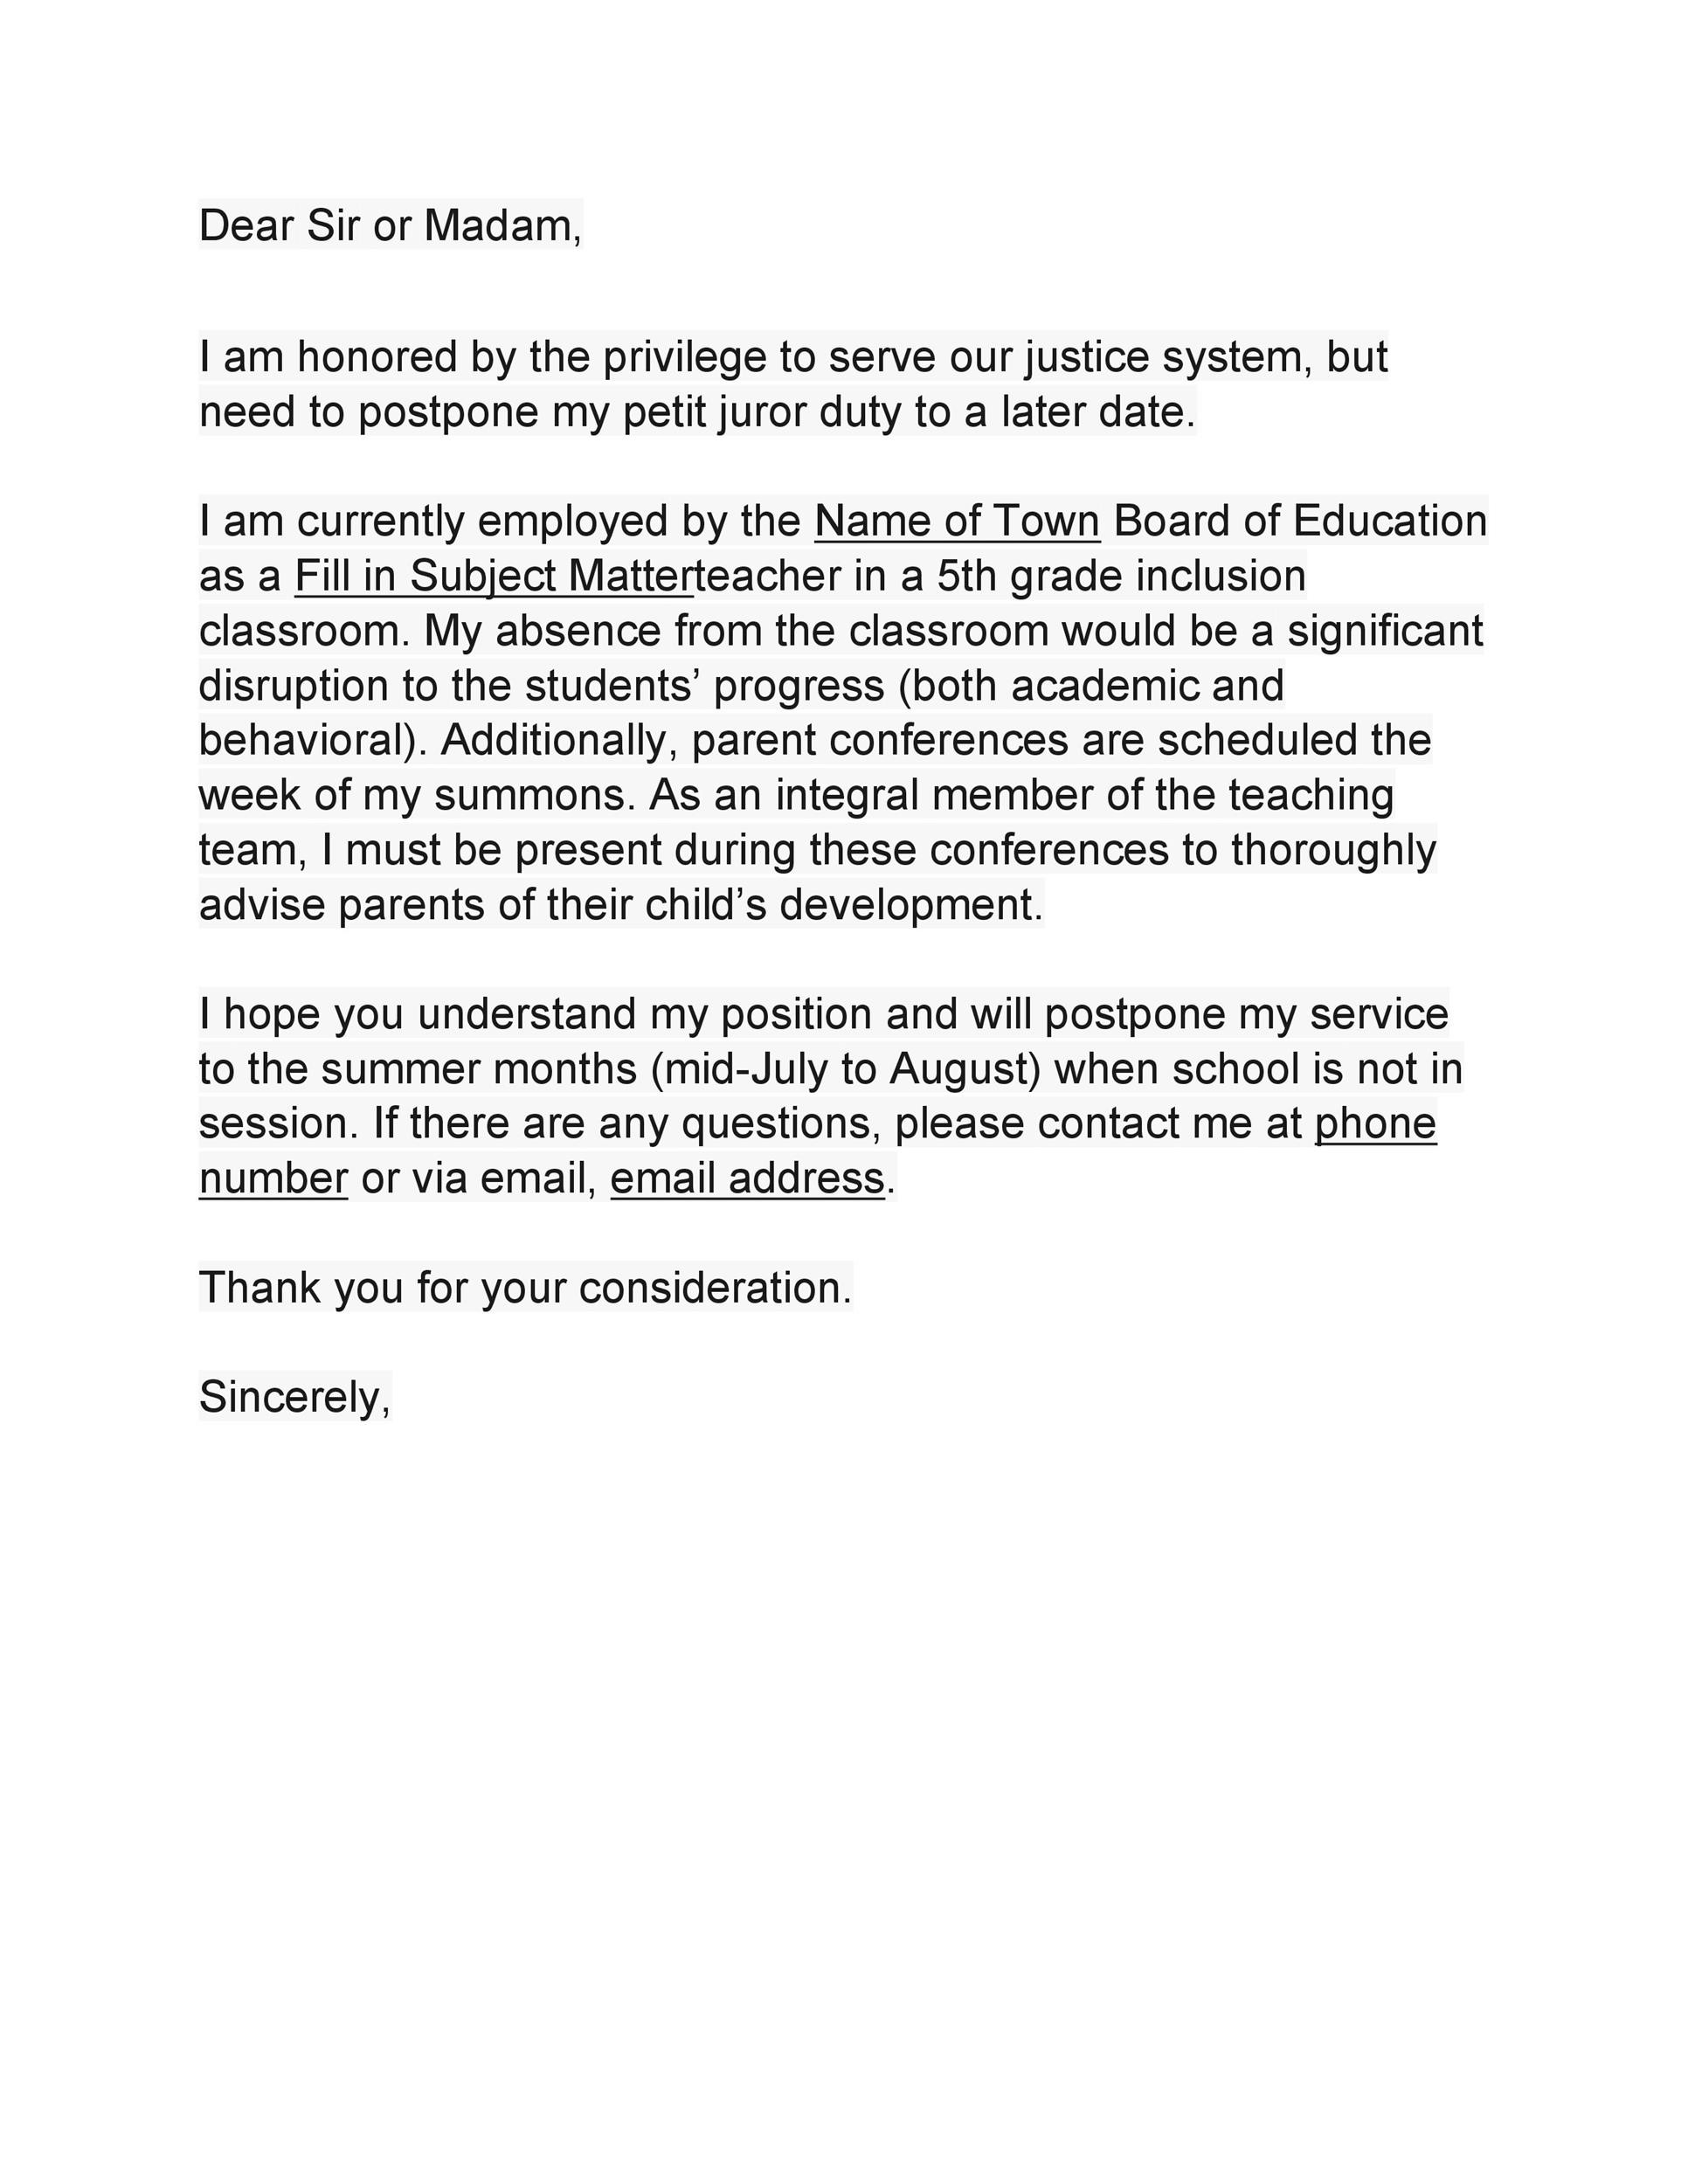 Free jury duty excuse letter template 30